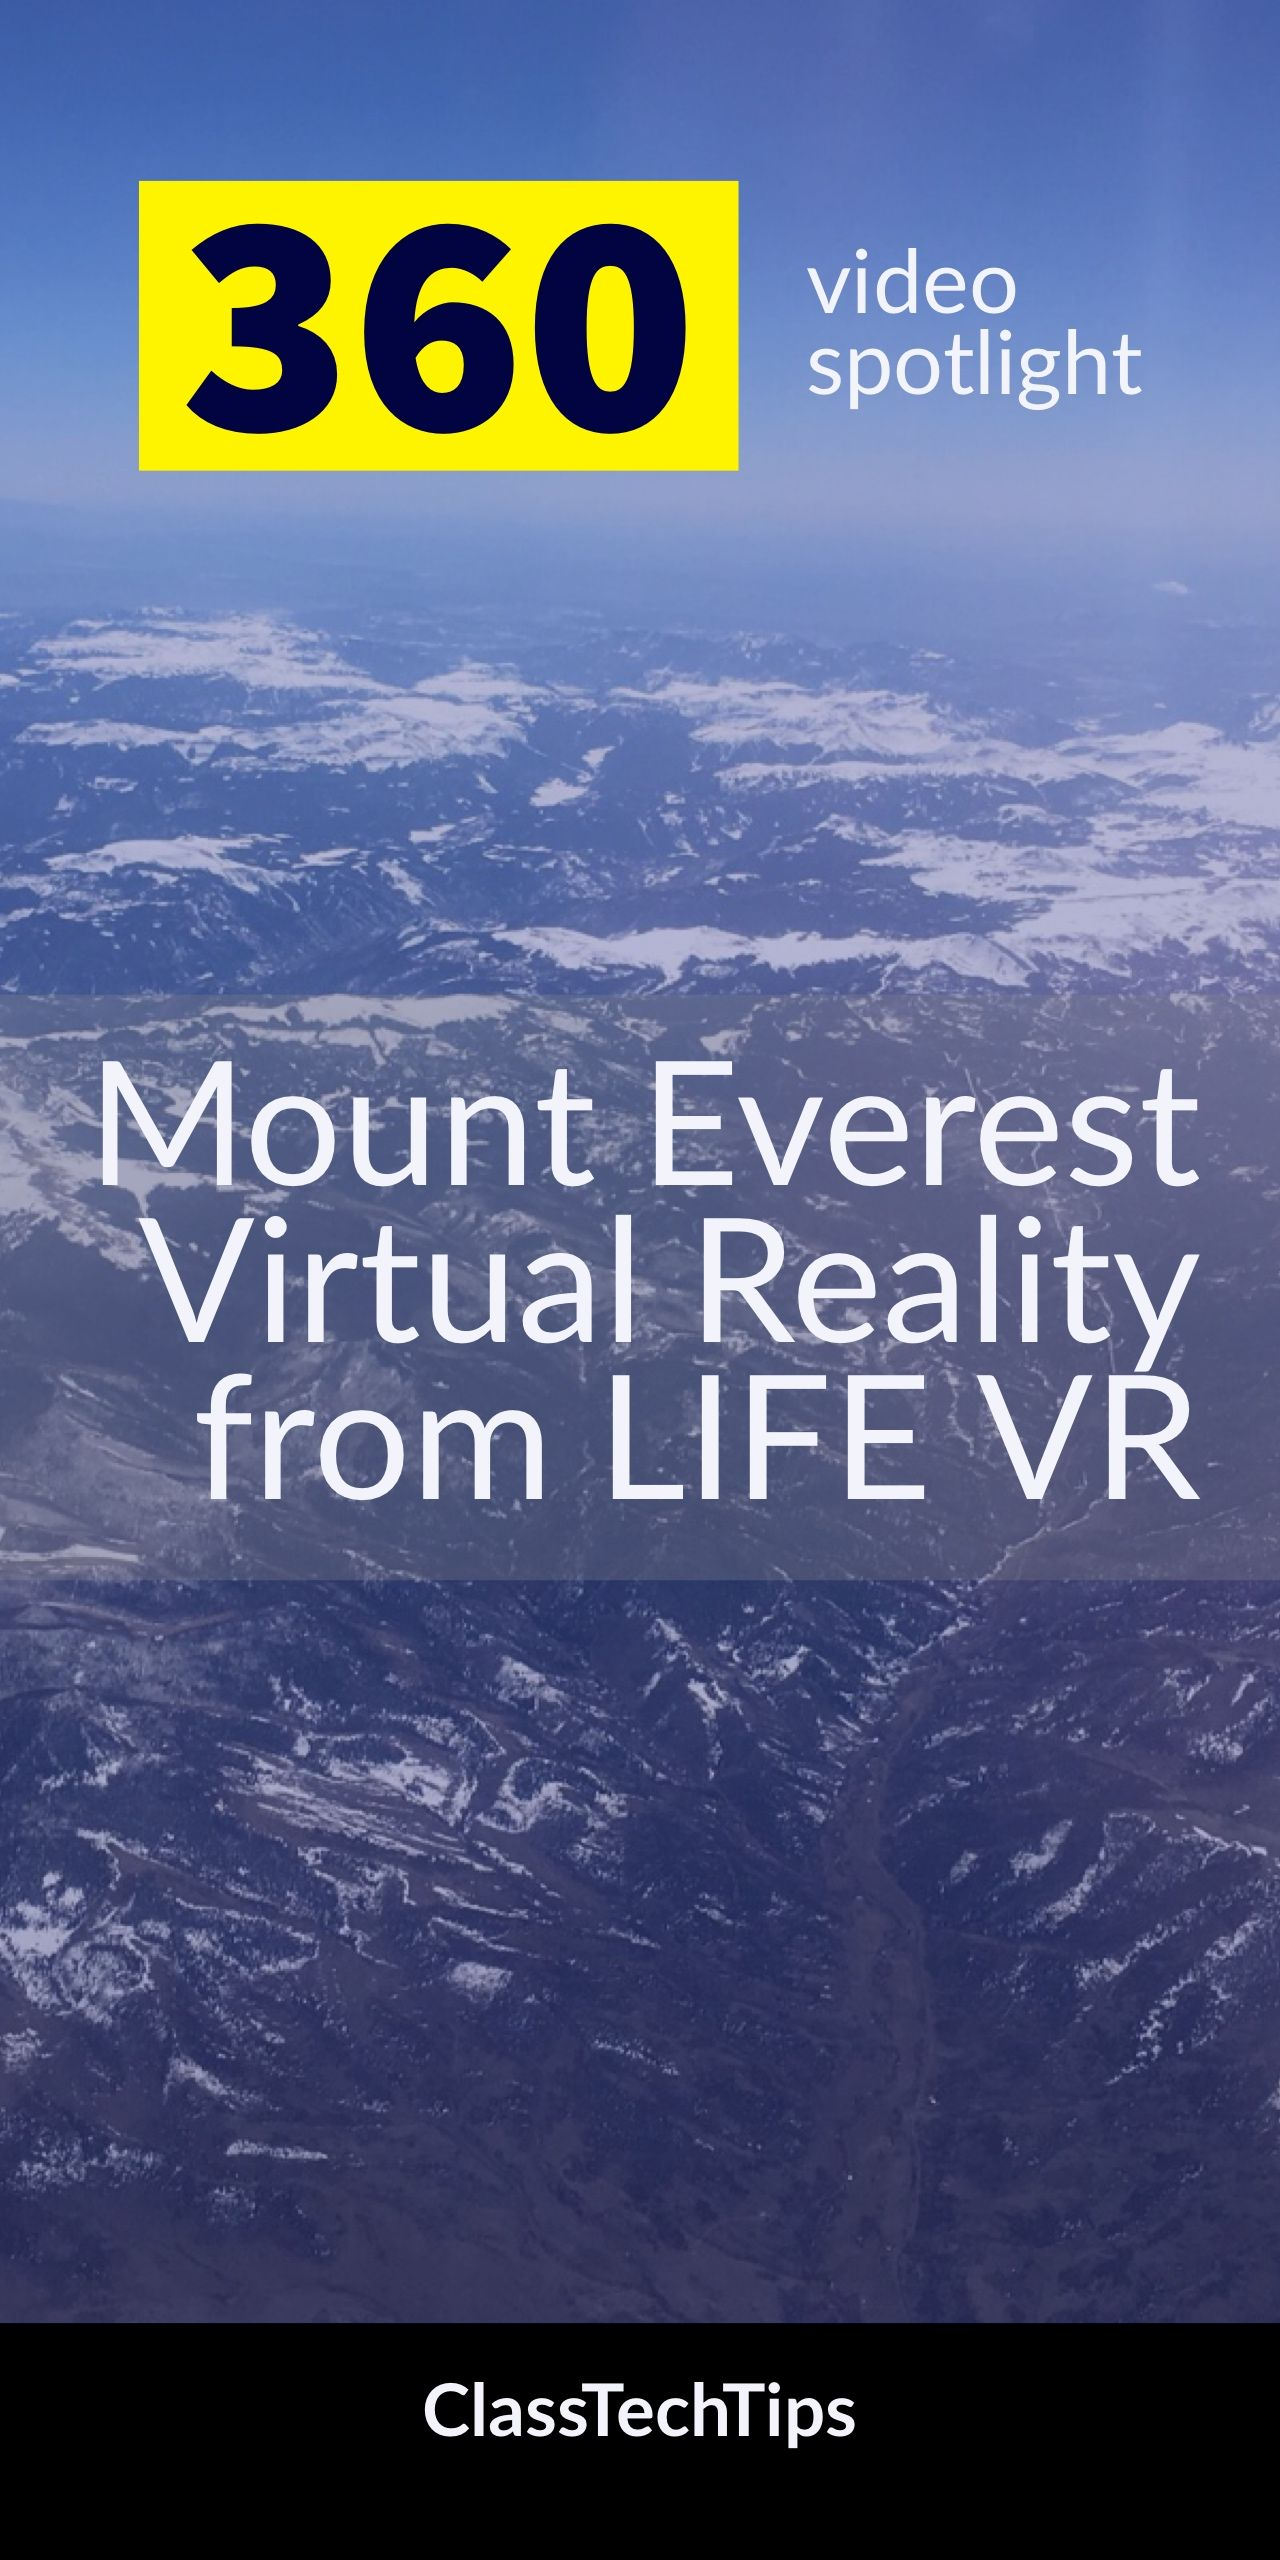 360 Video Spotlight Mount Everest Virtual Reality from